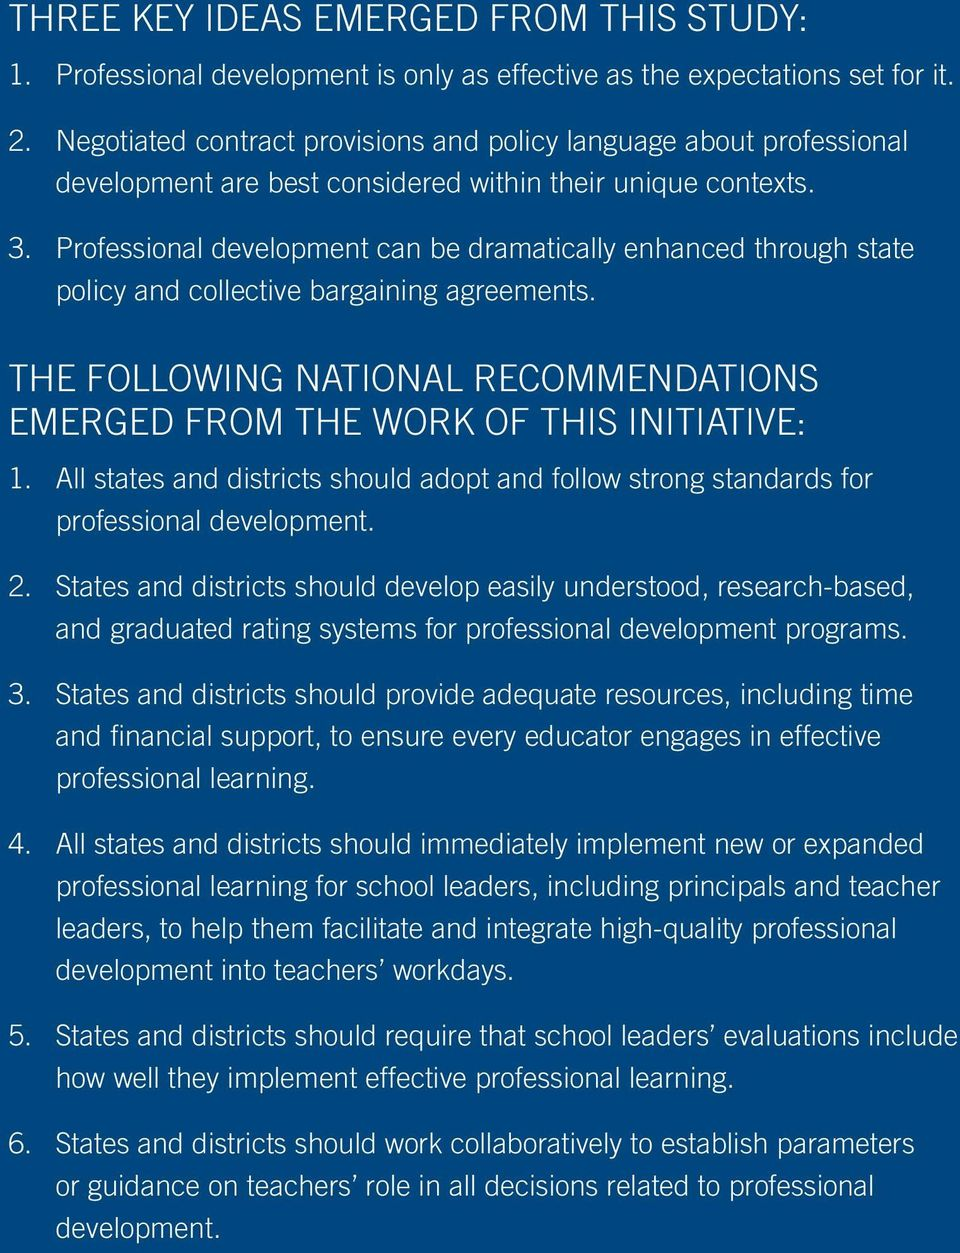 Professional development can be dramatically enhanced through state policy and collective bargaining agreements. The following national recommendations emerged from the work of this initiative: 1.